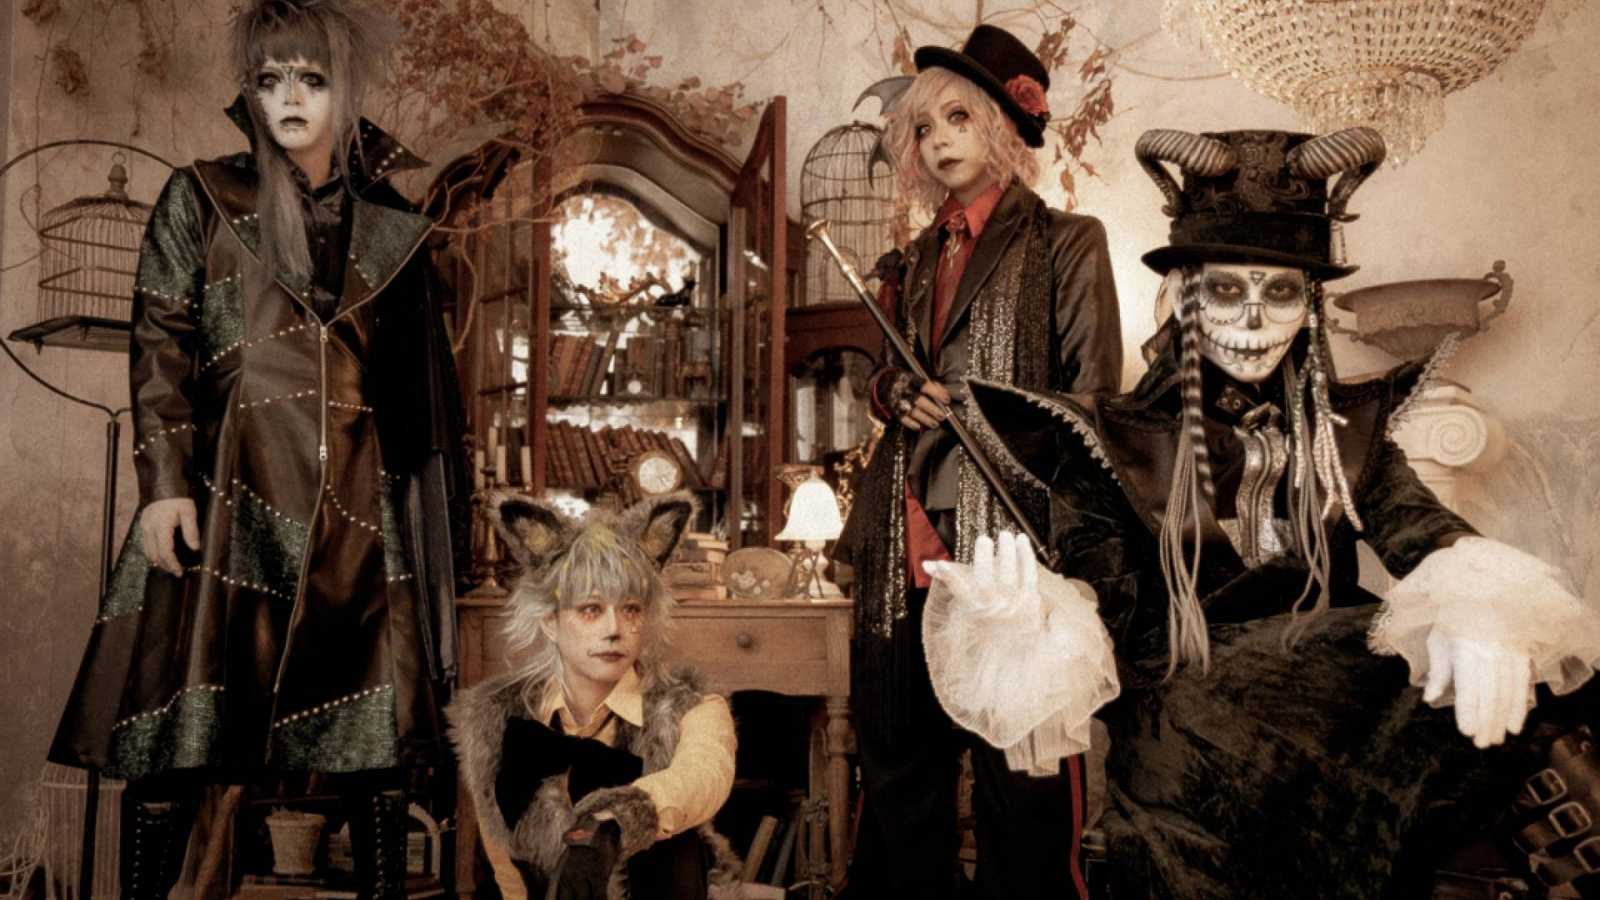 Details on Leetspeak monsters' New Single © GLK MUSIC. All rights reserved.